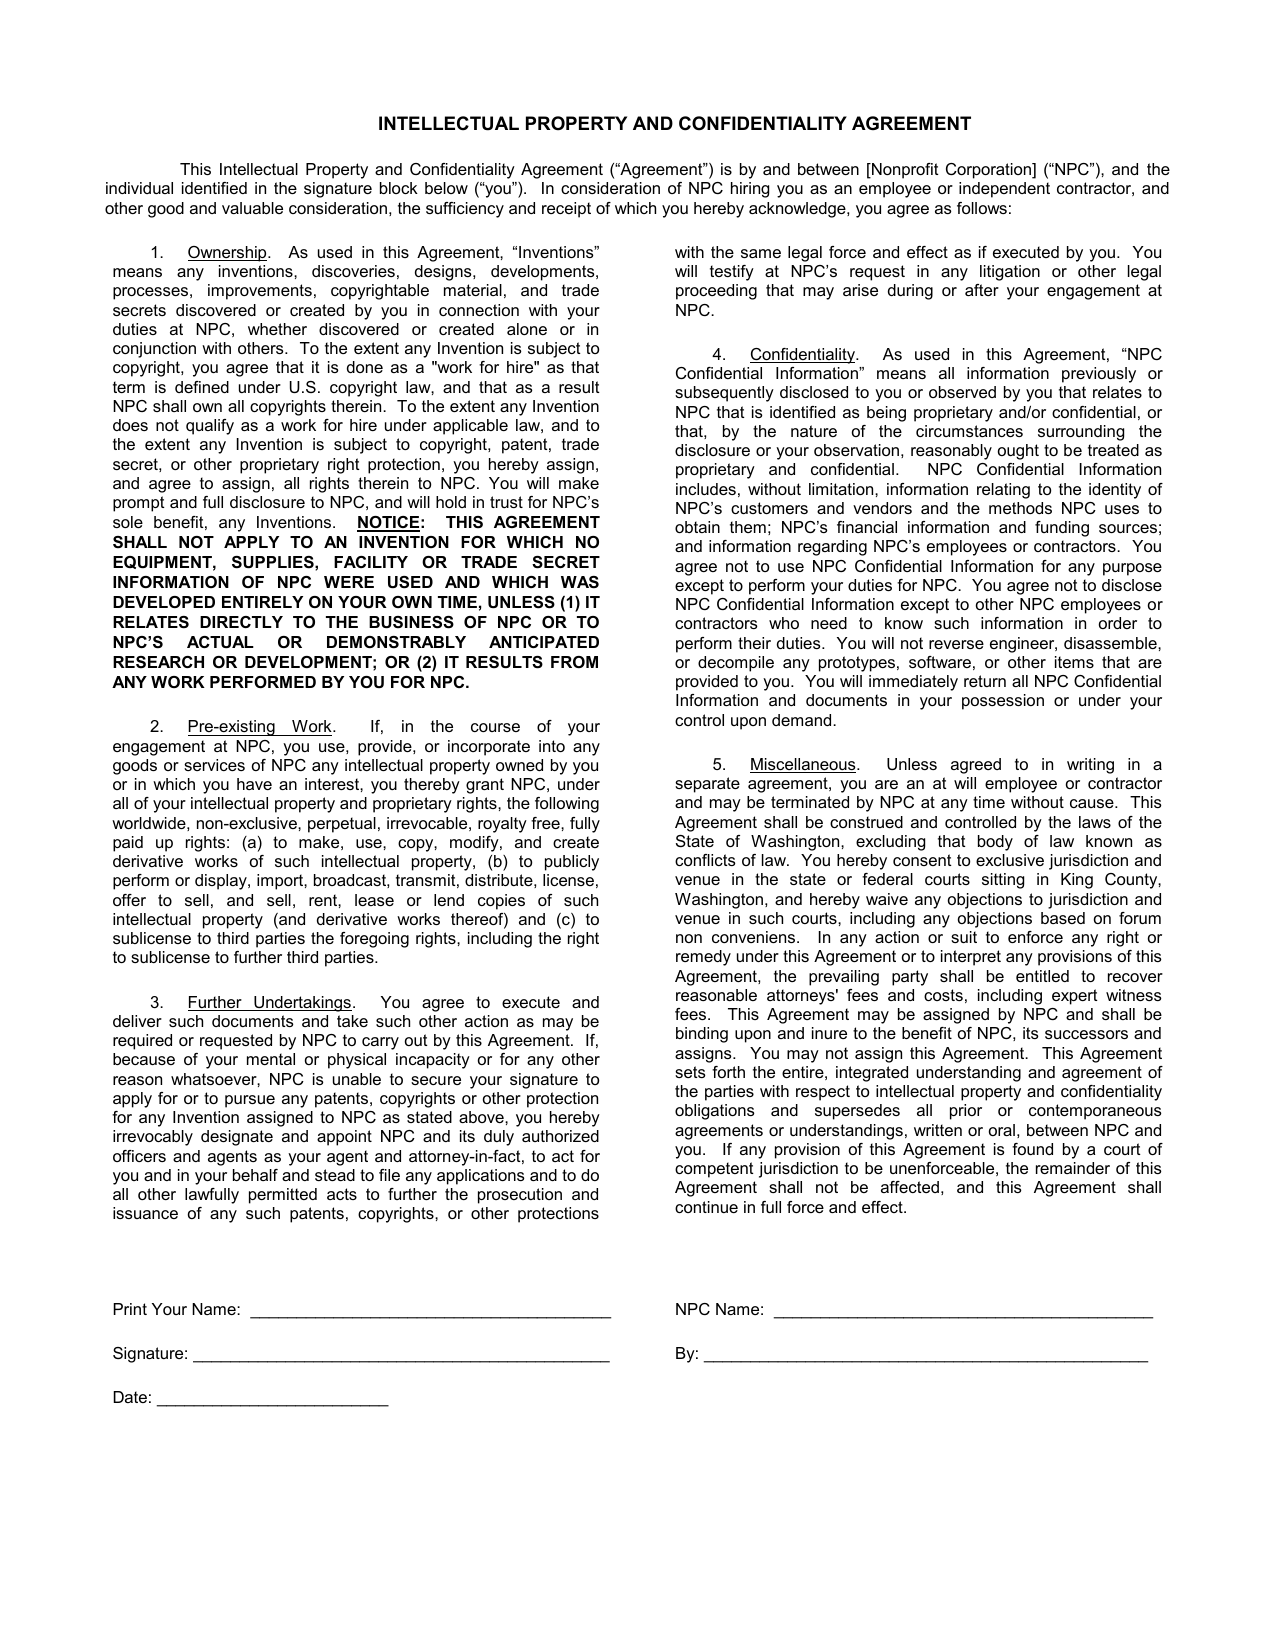 Sample Intellectual Property And Confidentiality Agreement